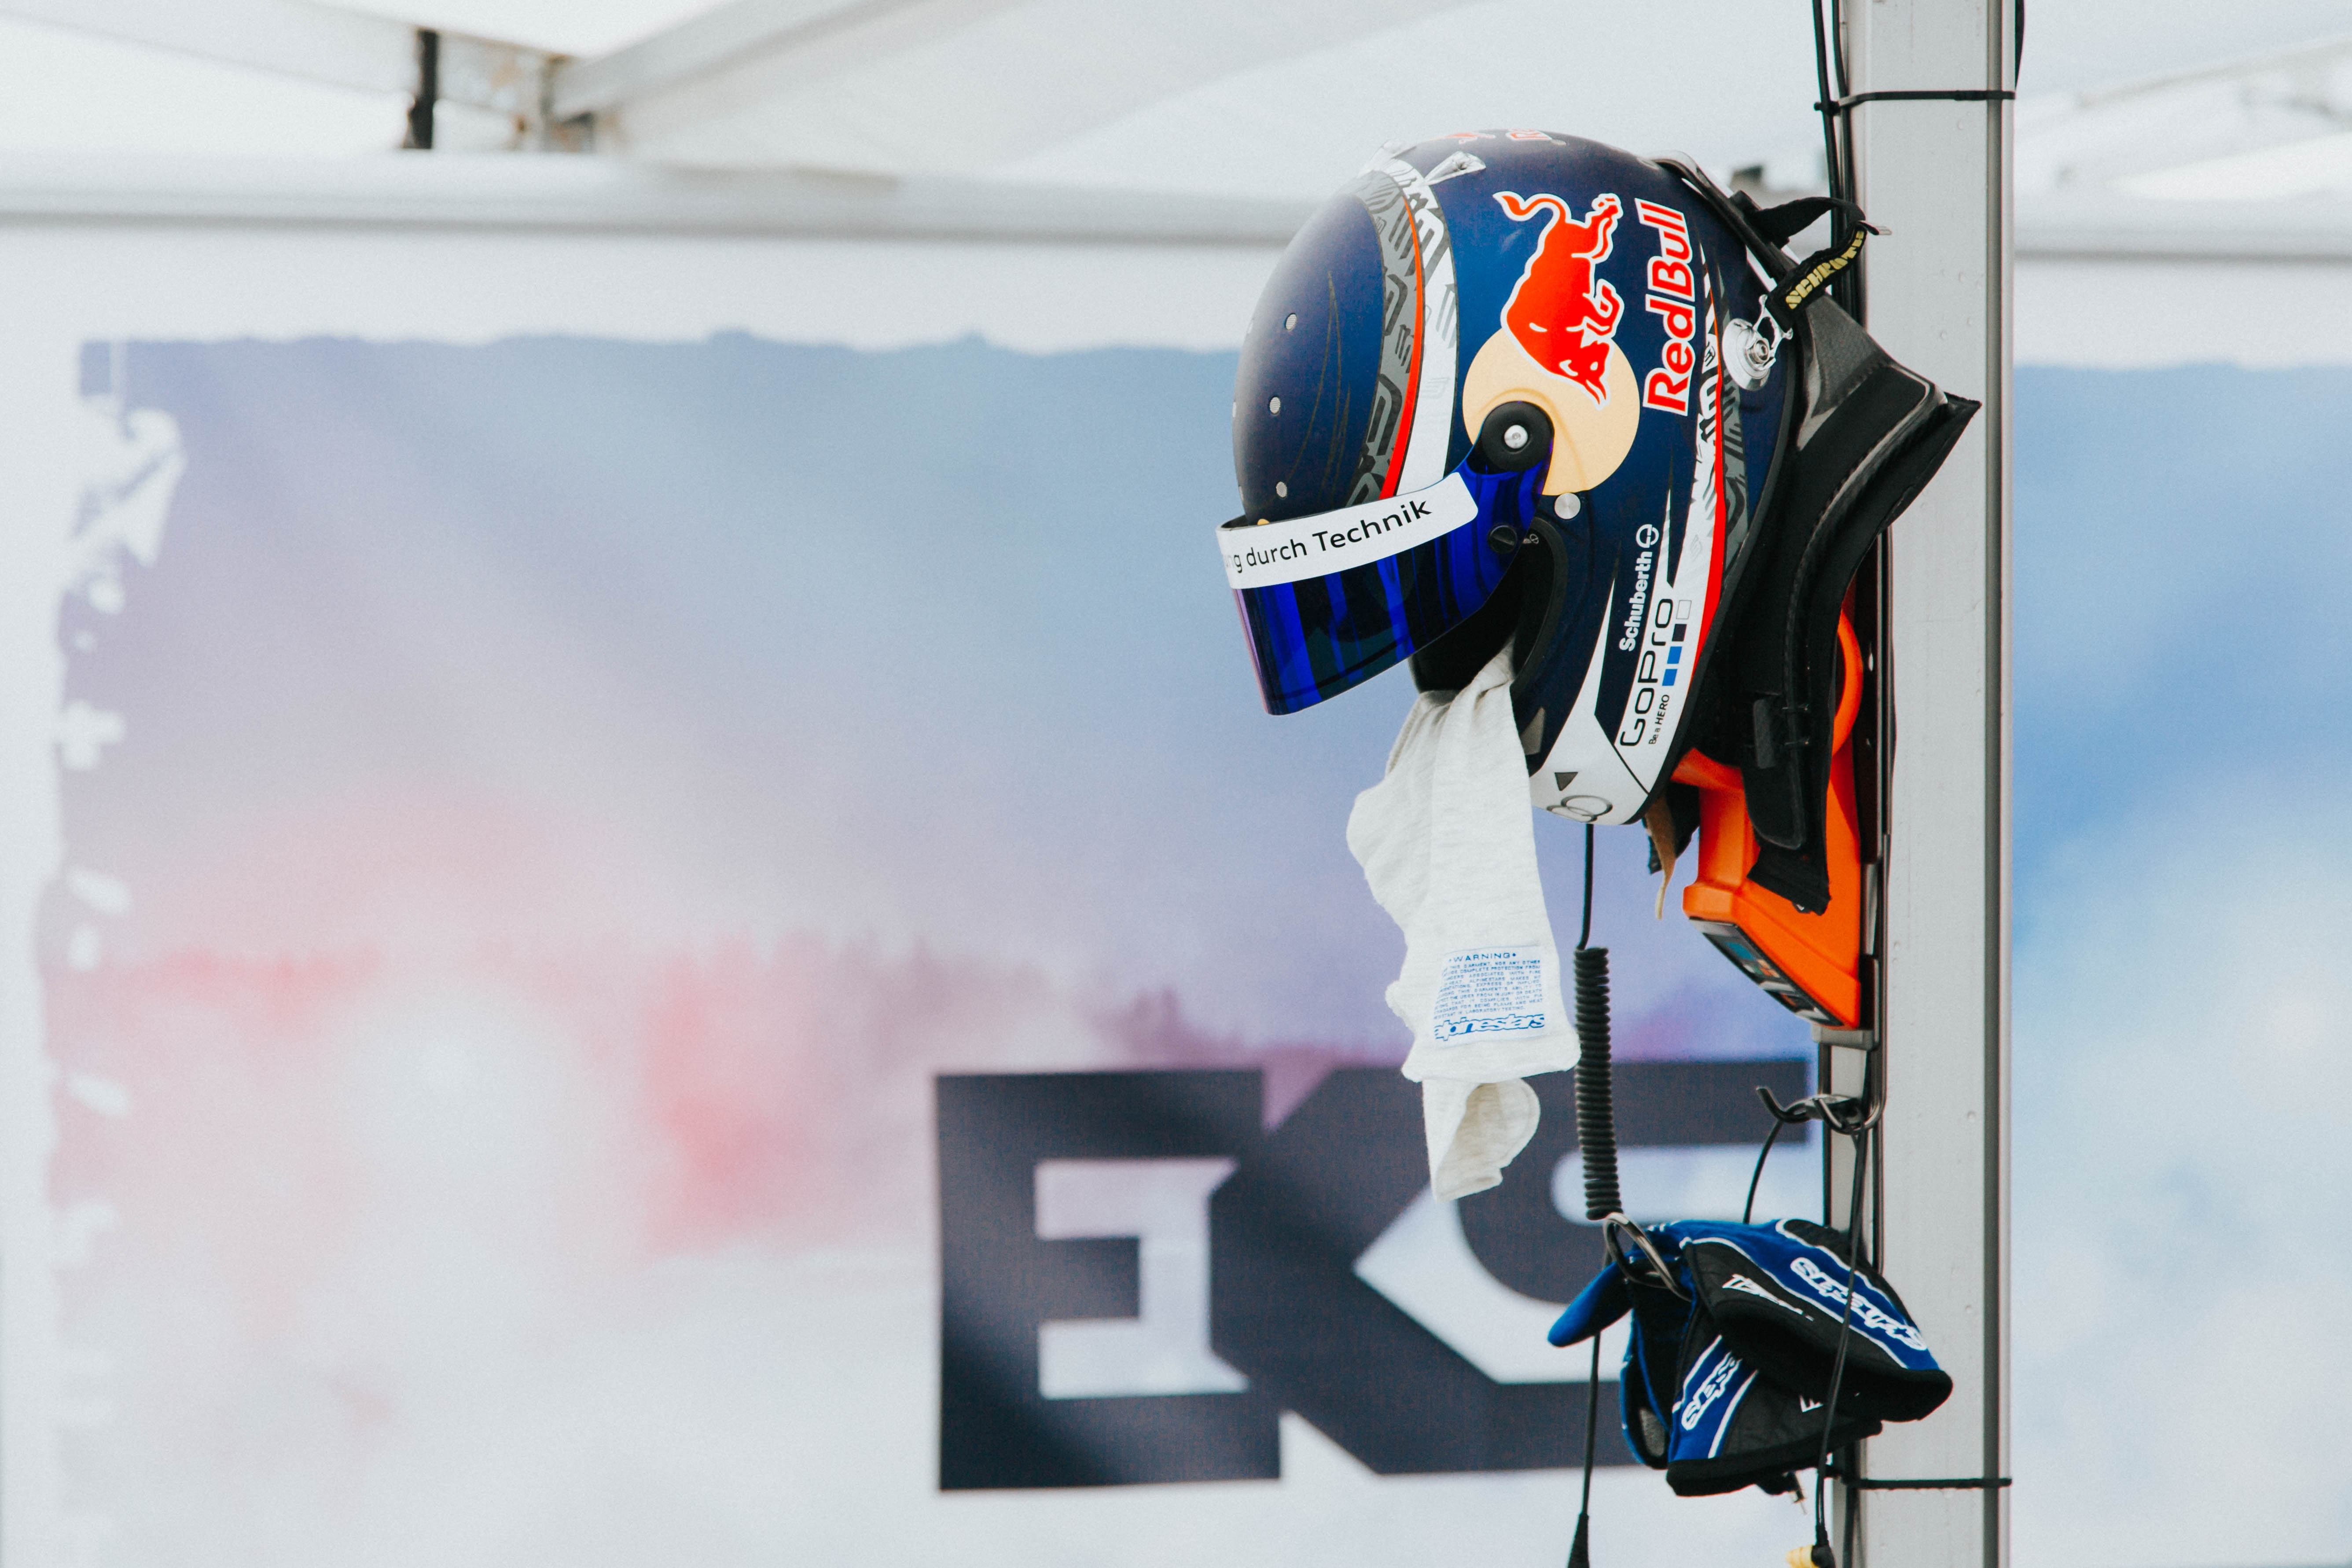 blue and white Redbull full-face helmet